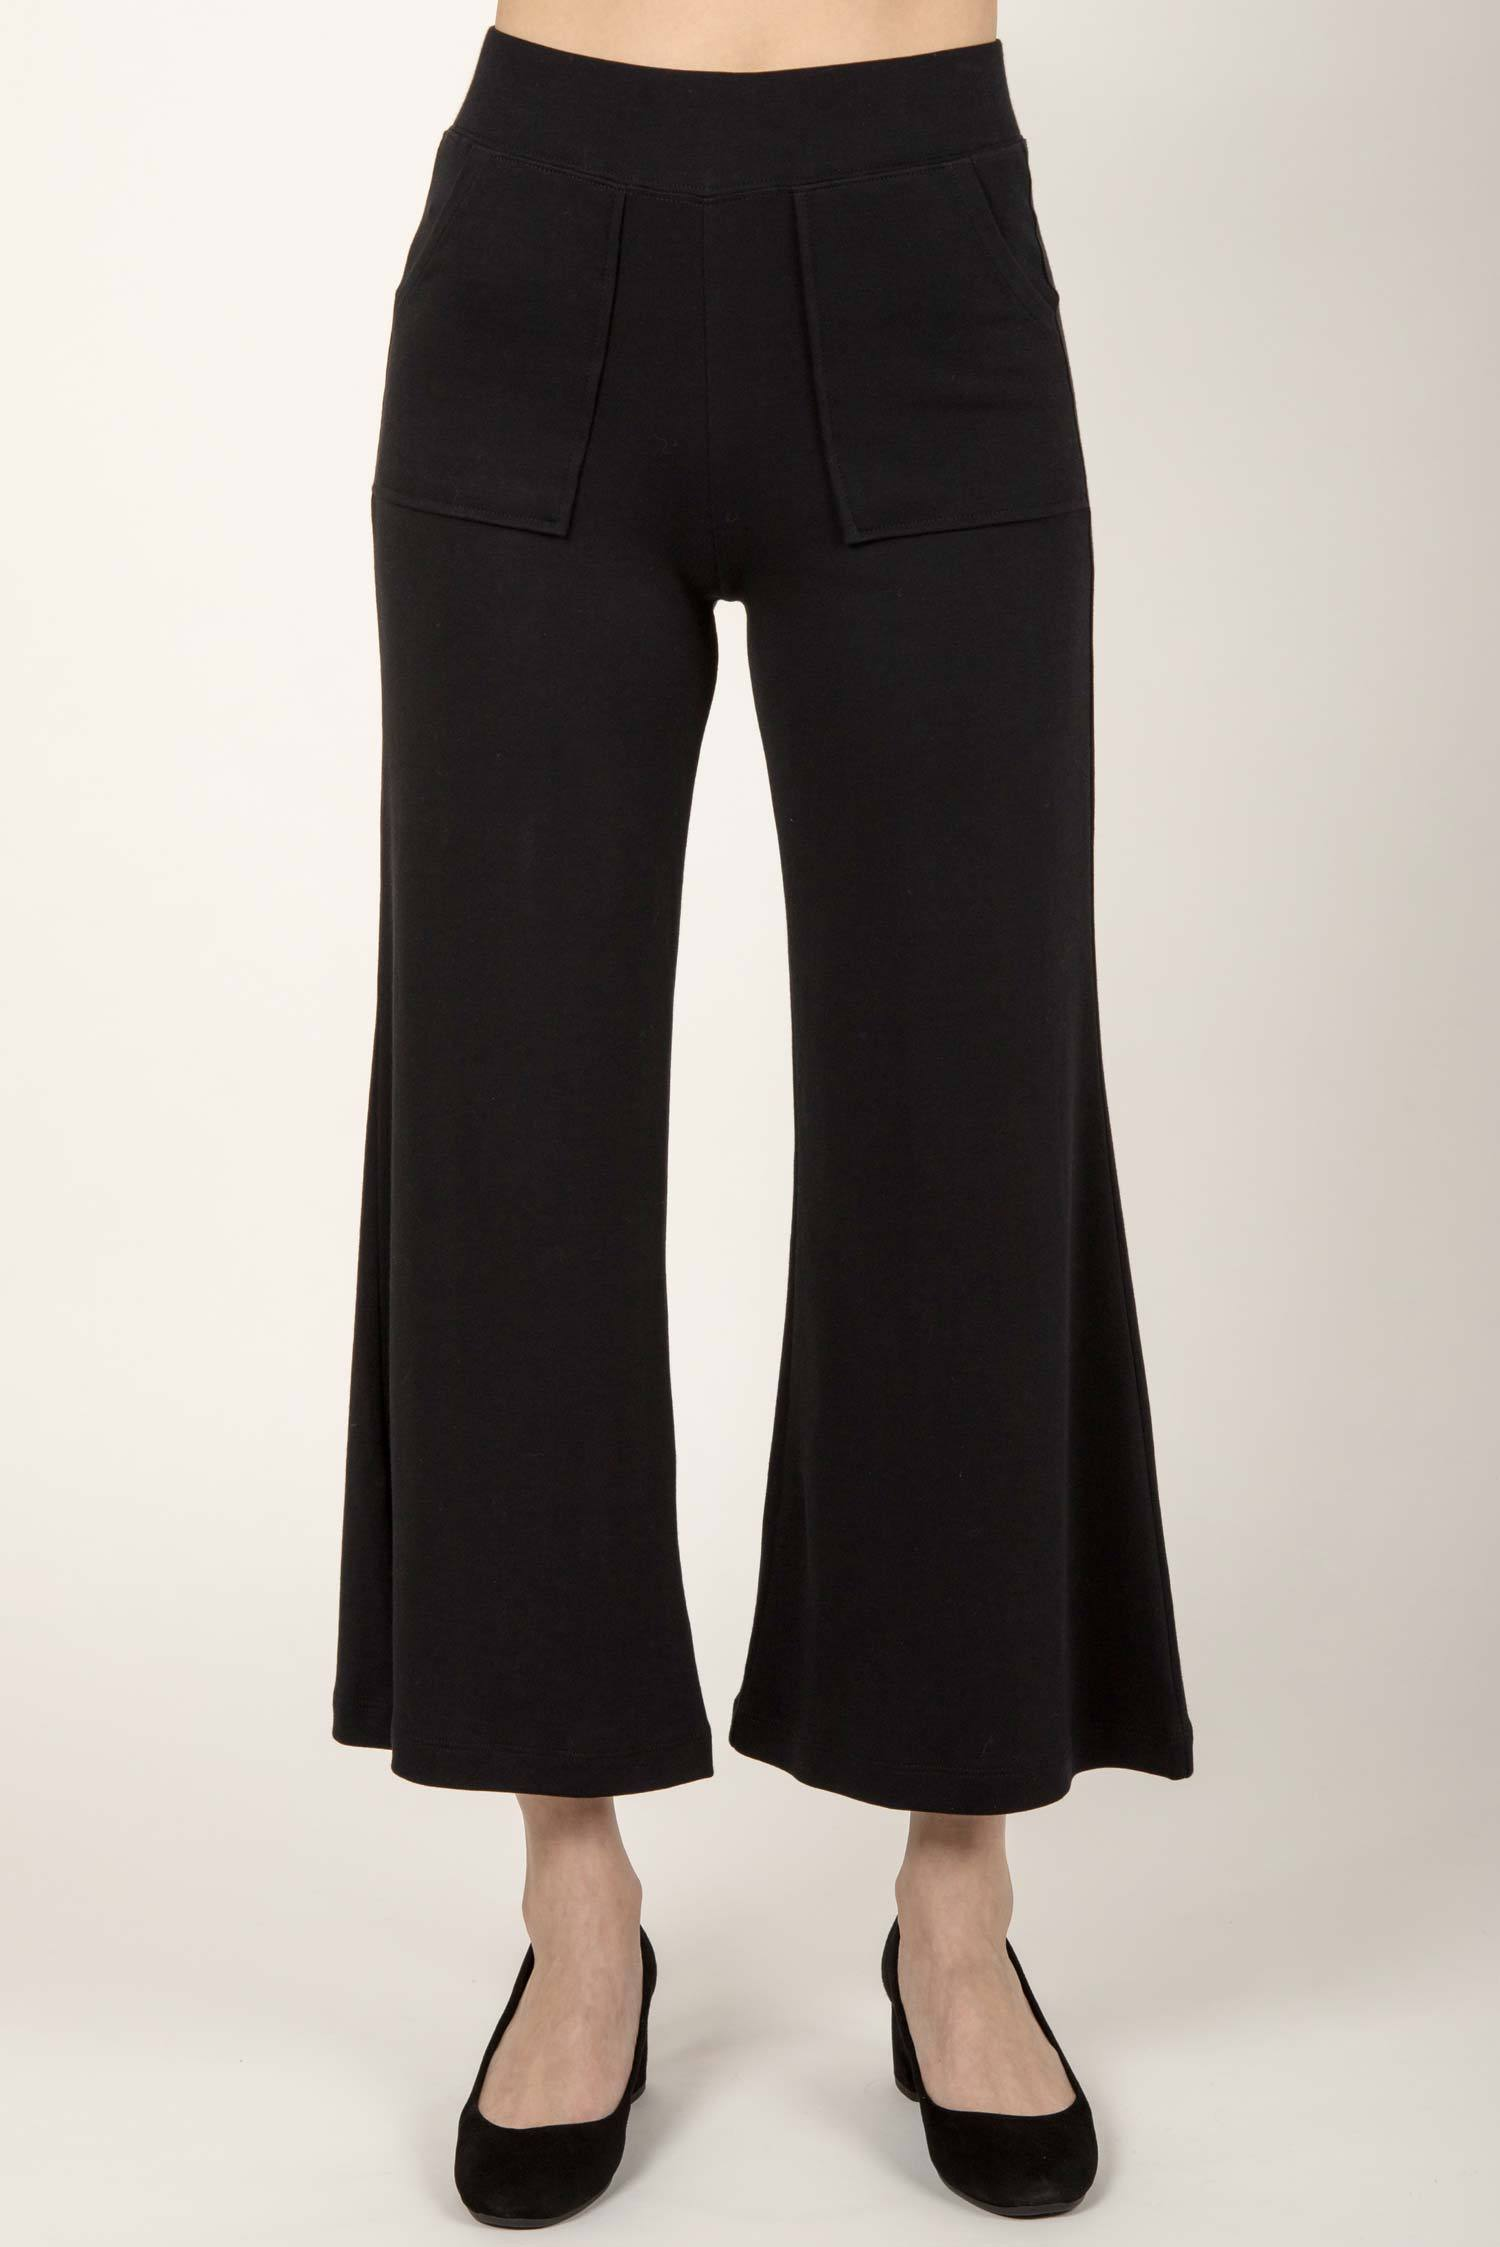 Essential Cropped Wide Leg Pant - Indigenous